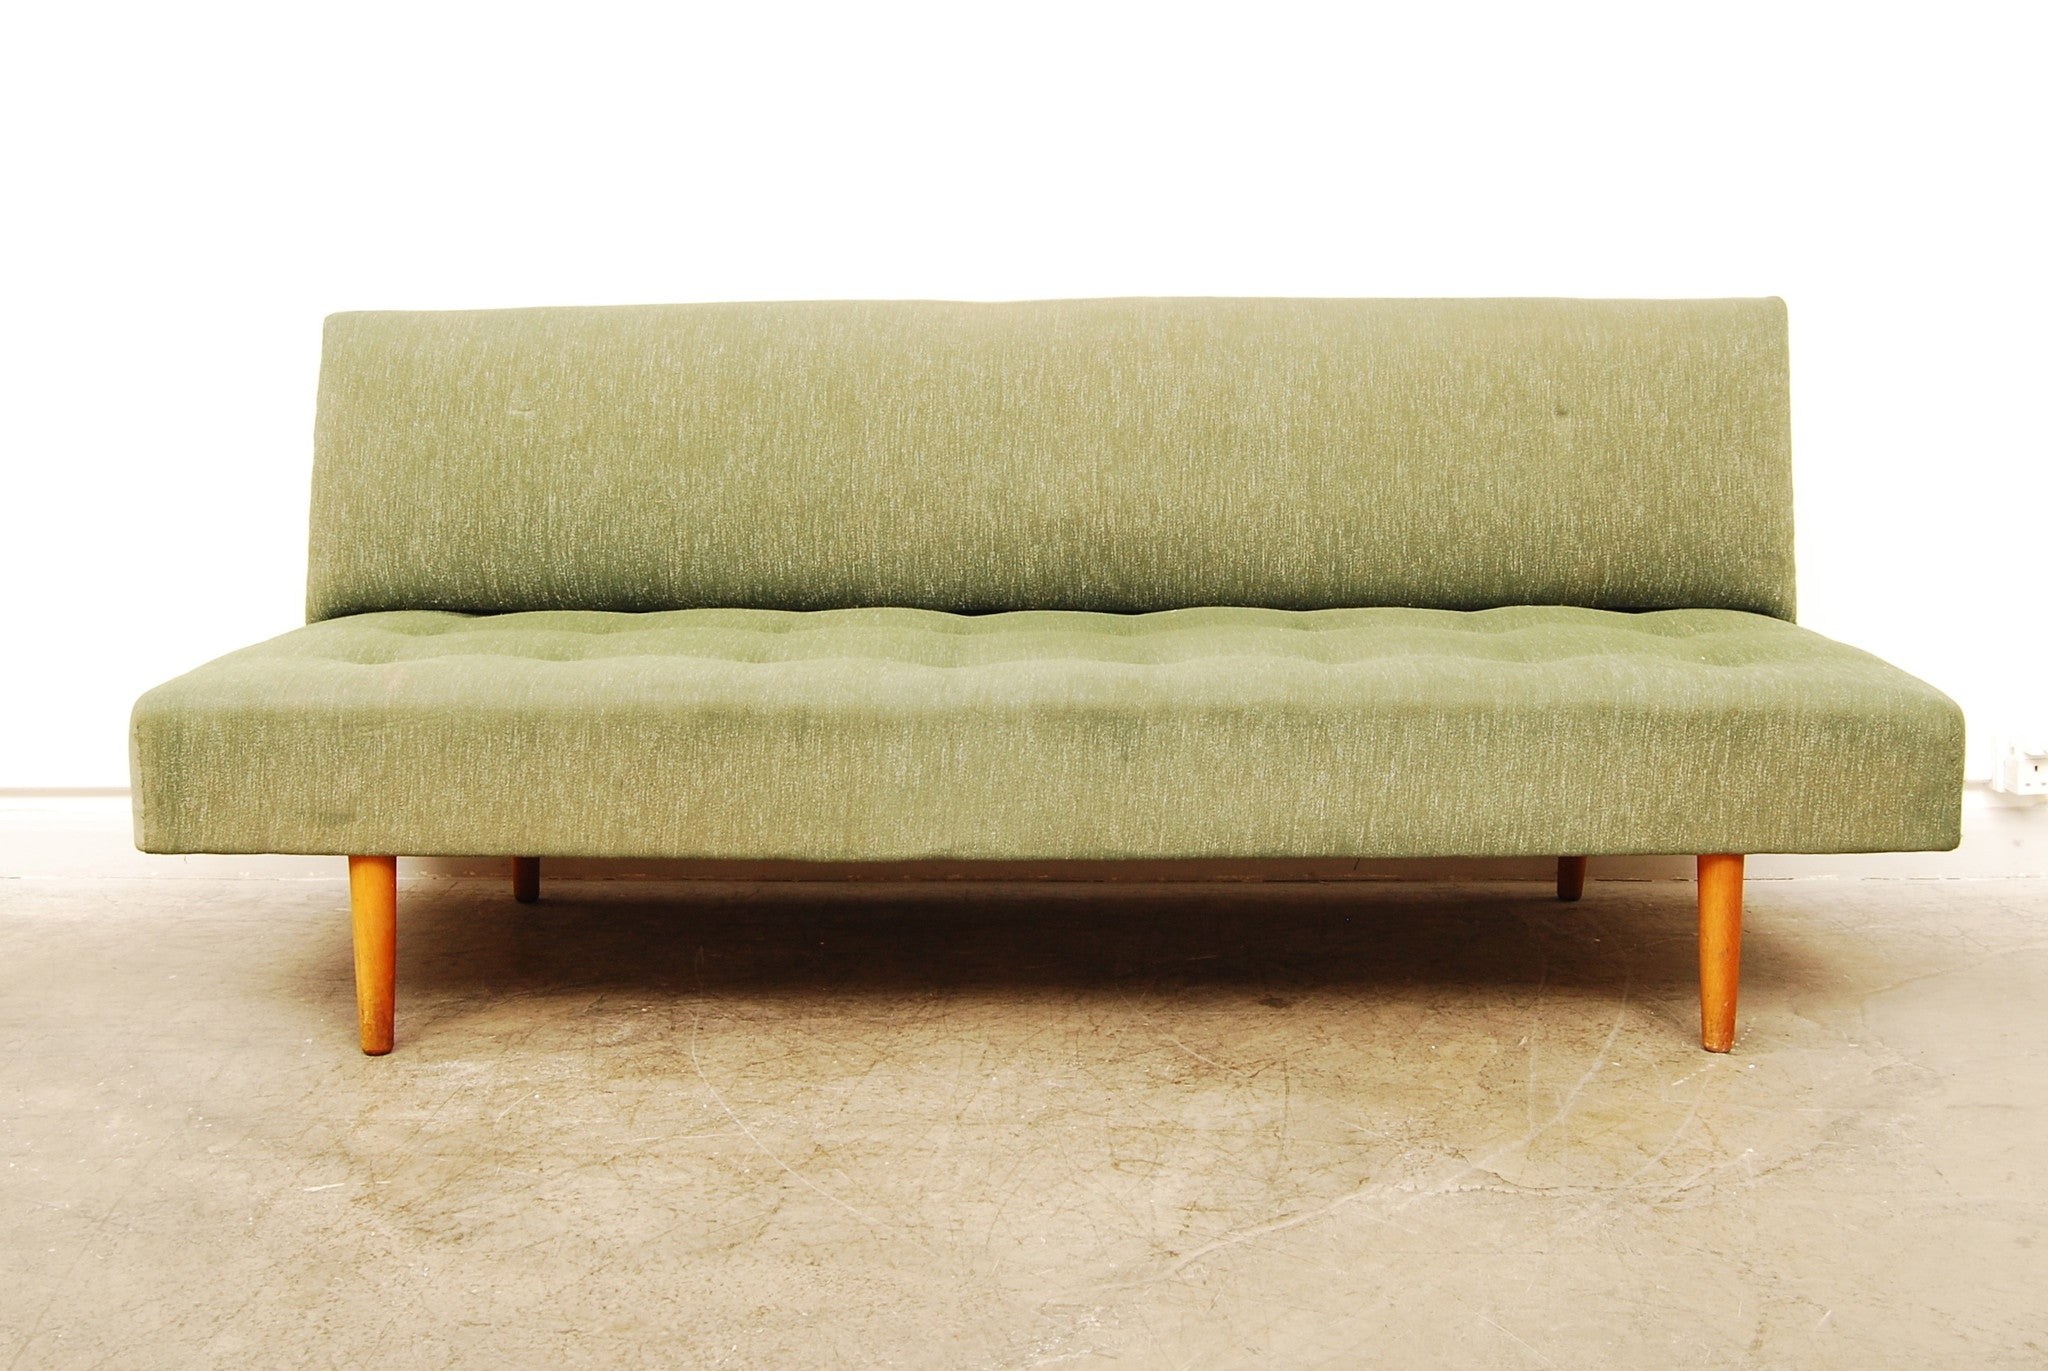 1950s daybed with backrest